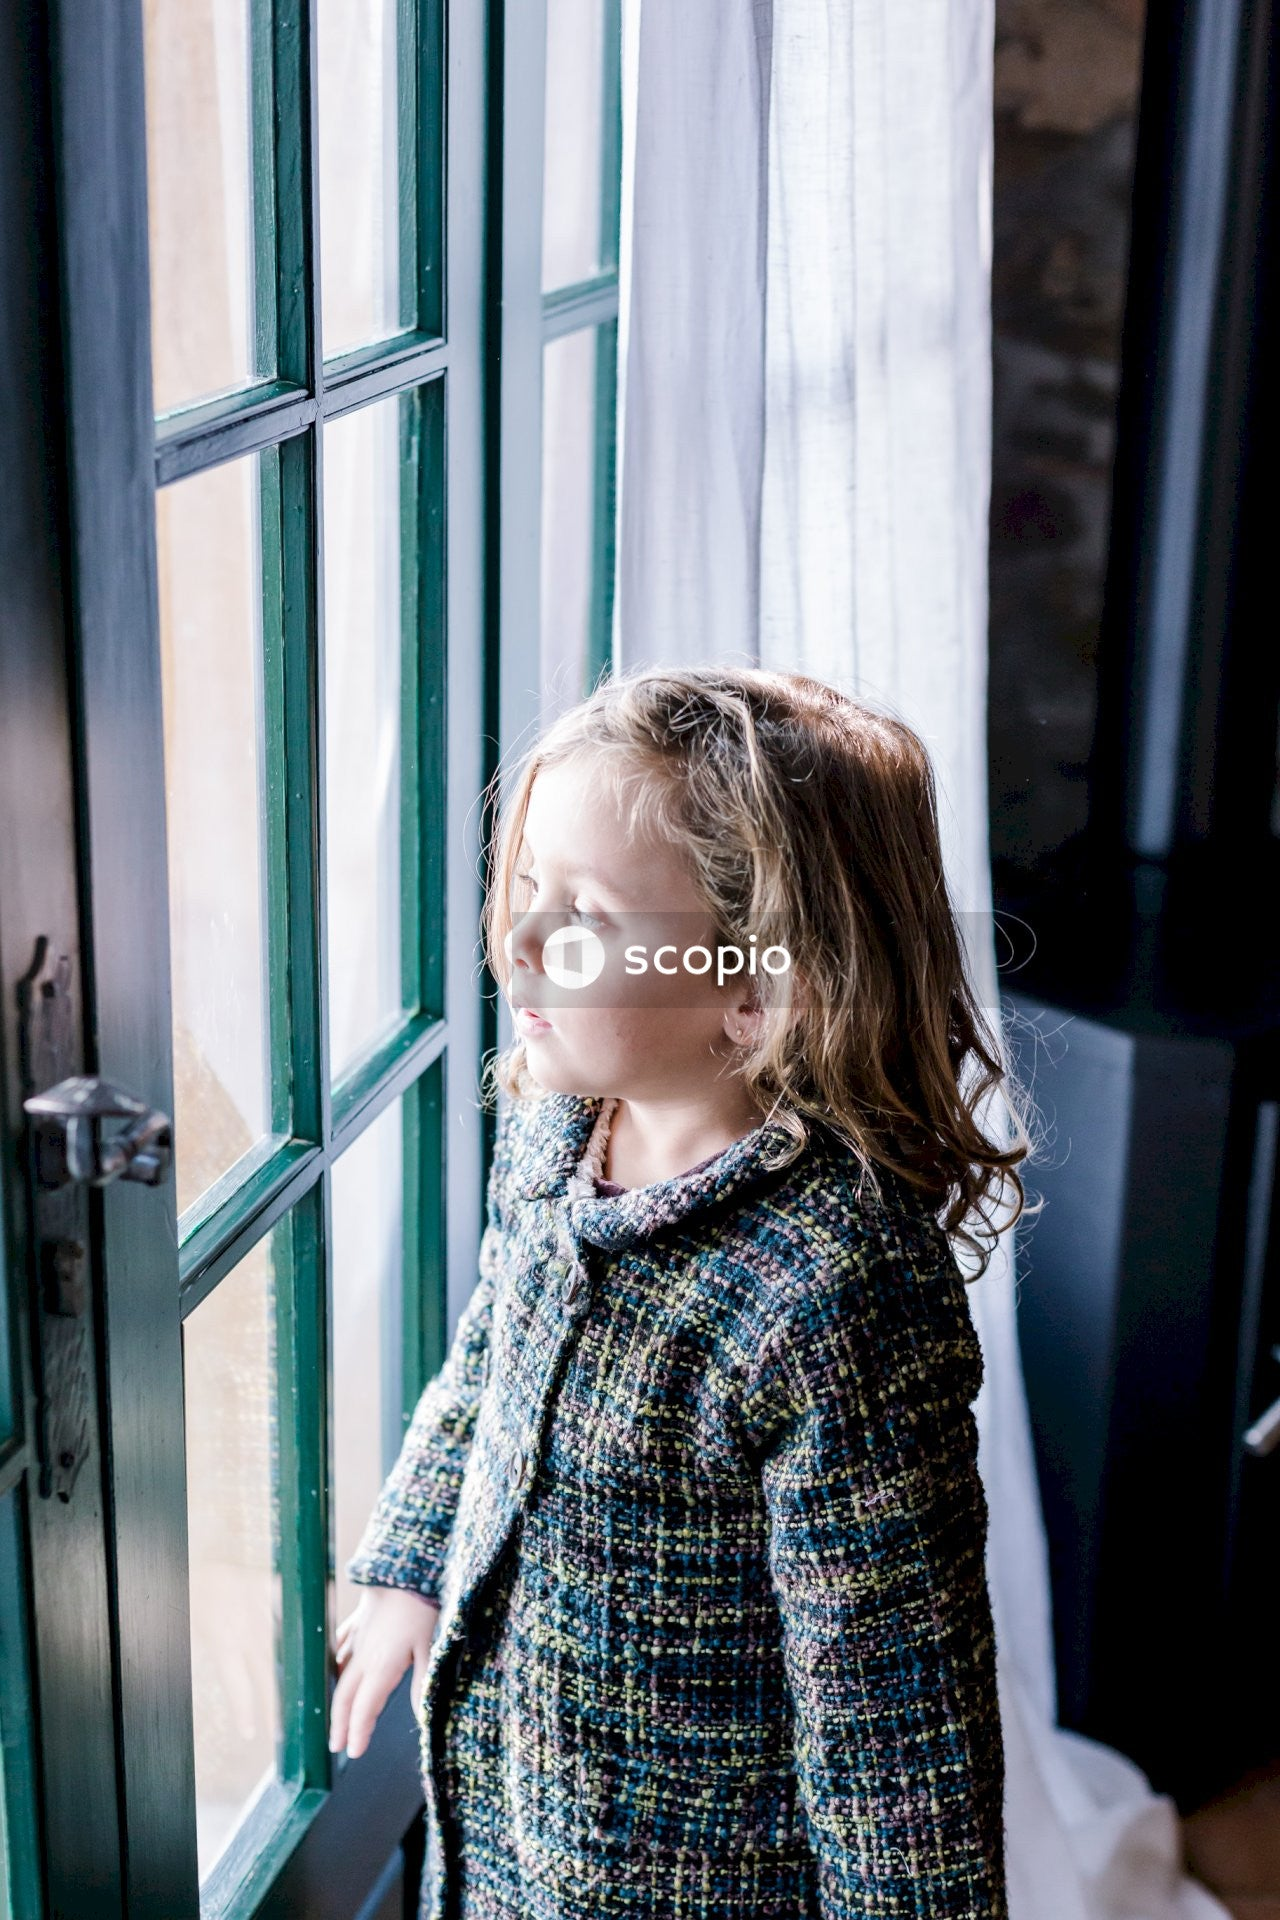 Girl in blue and white sweater standing beside green wooden door